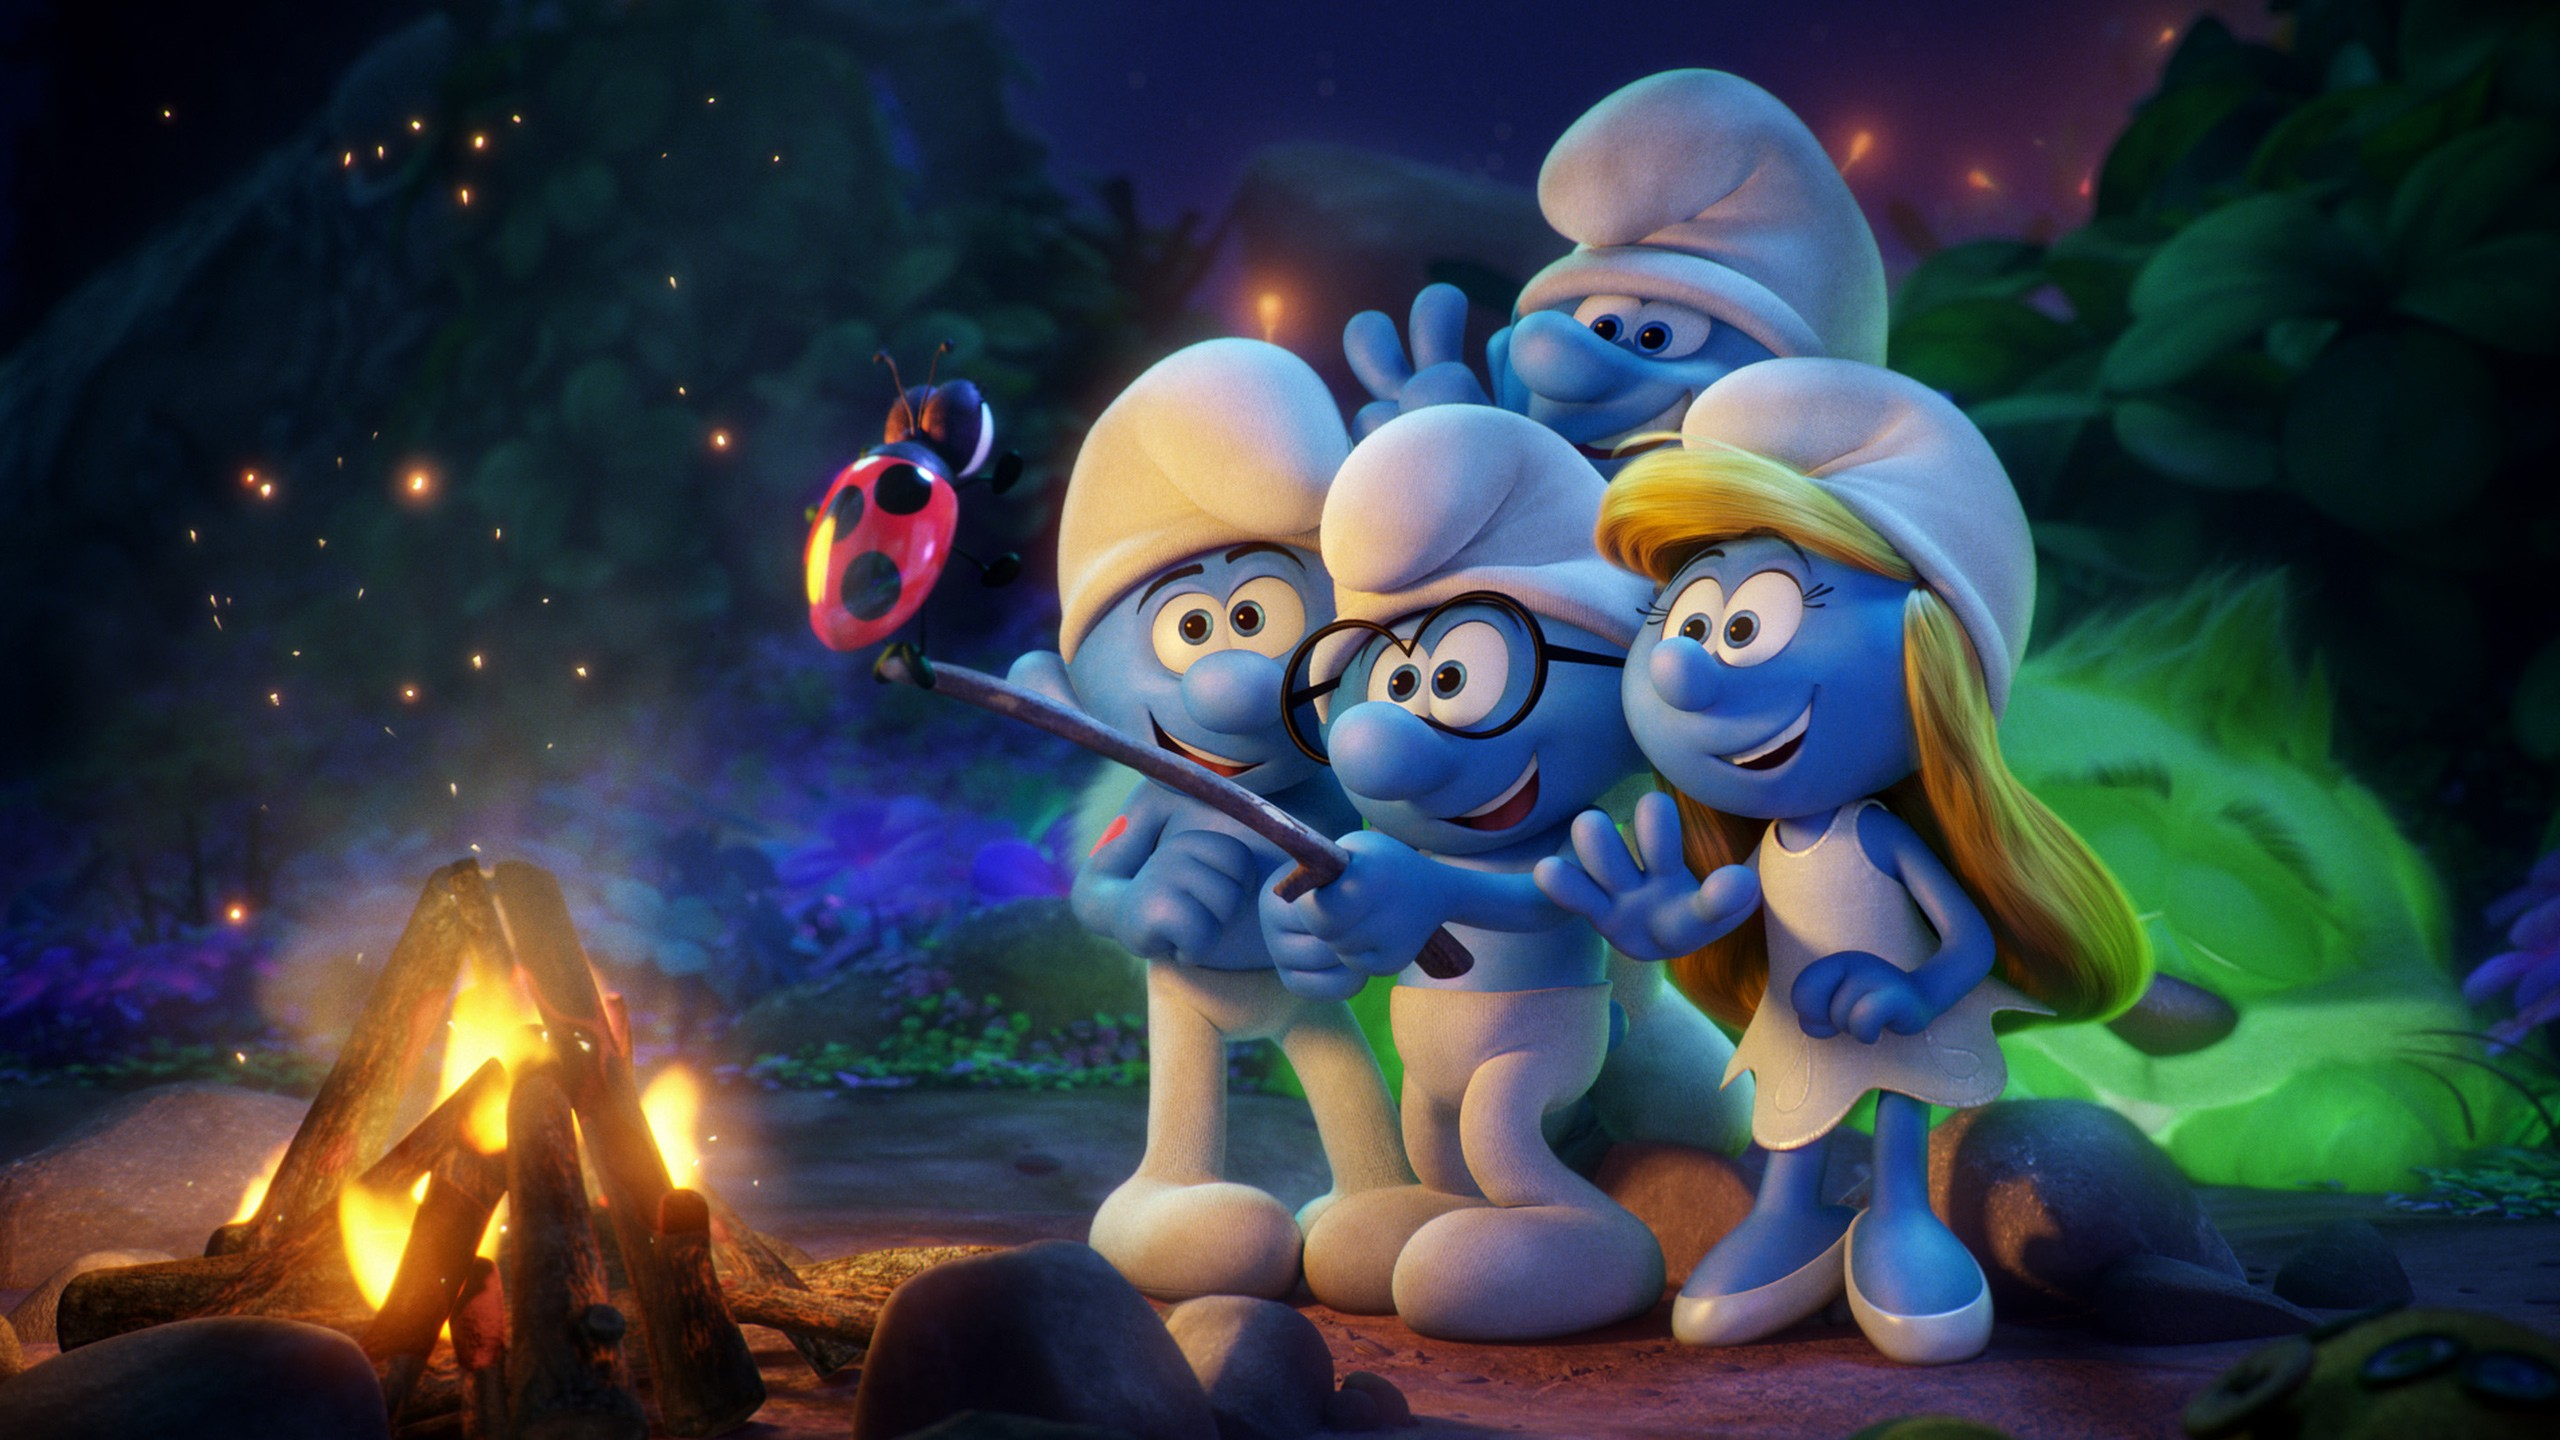 3d Wallpaper Under The Sea Smurfs The Lost Village Animation Movie Wallpapers Hd